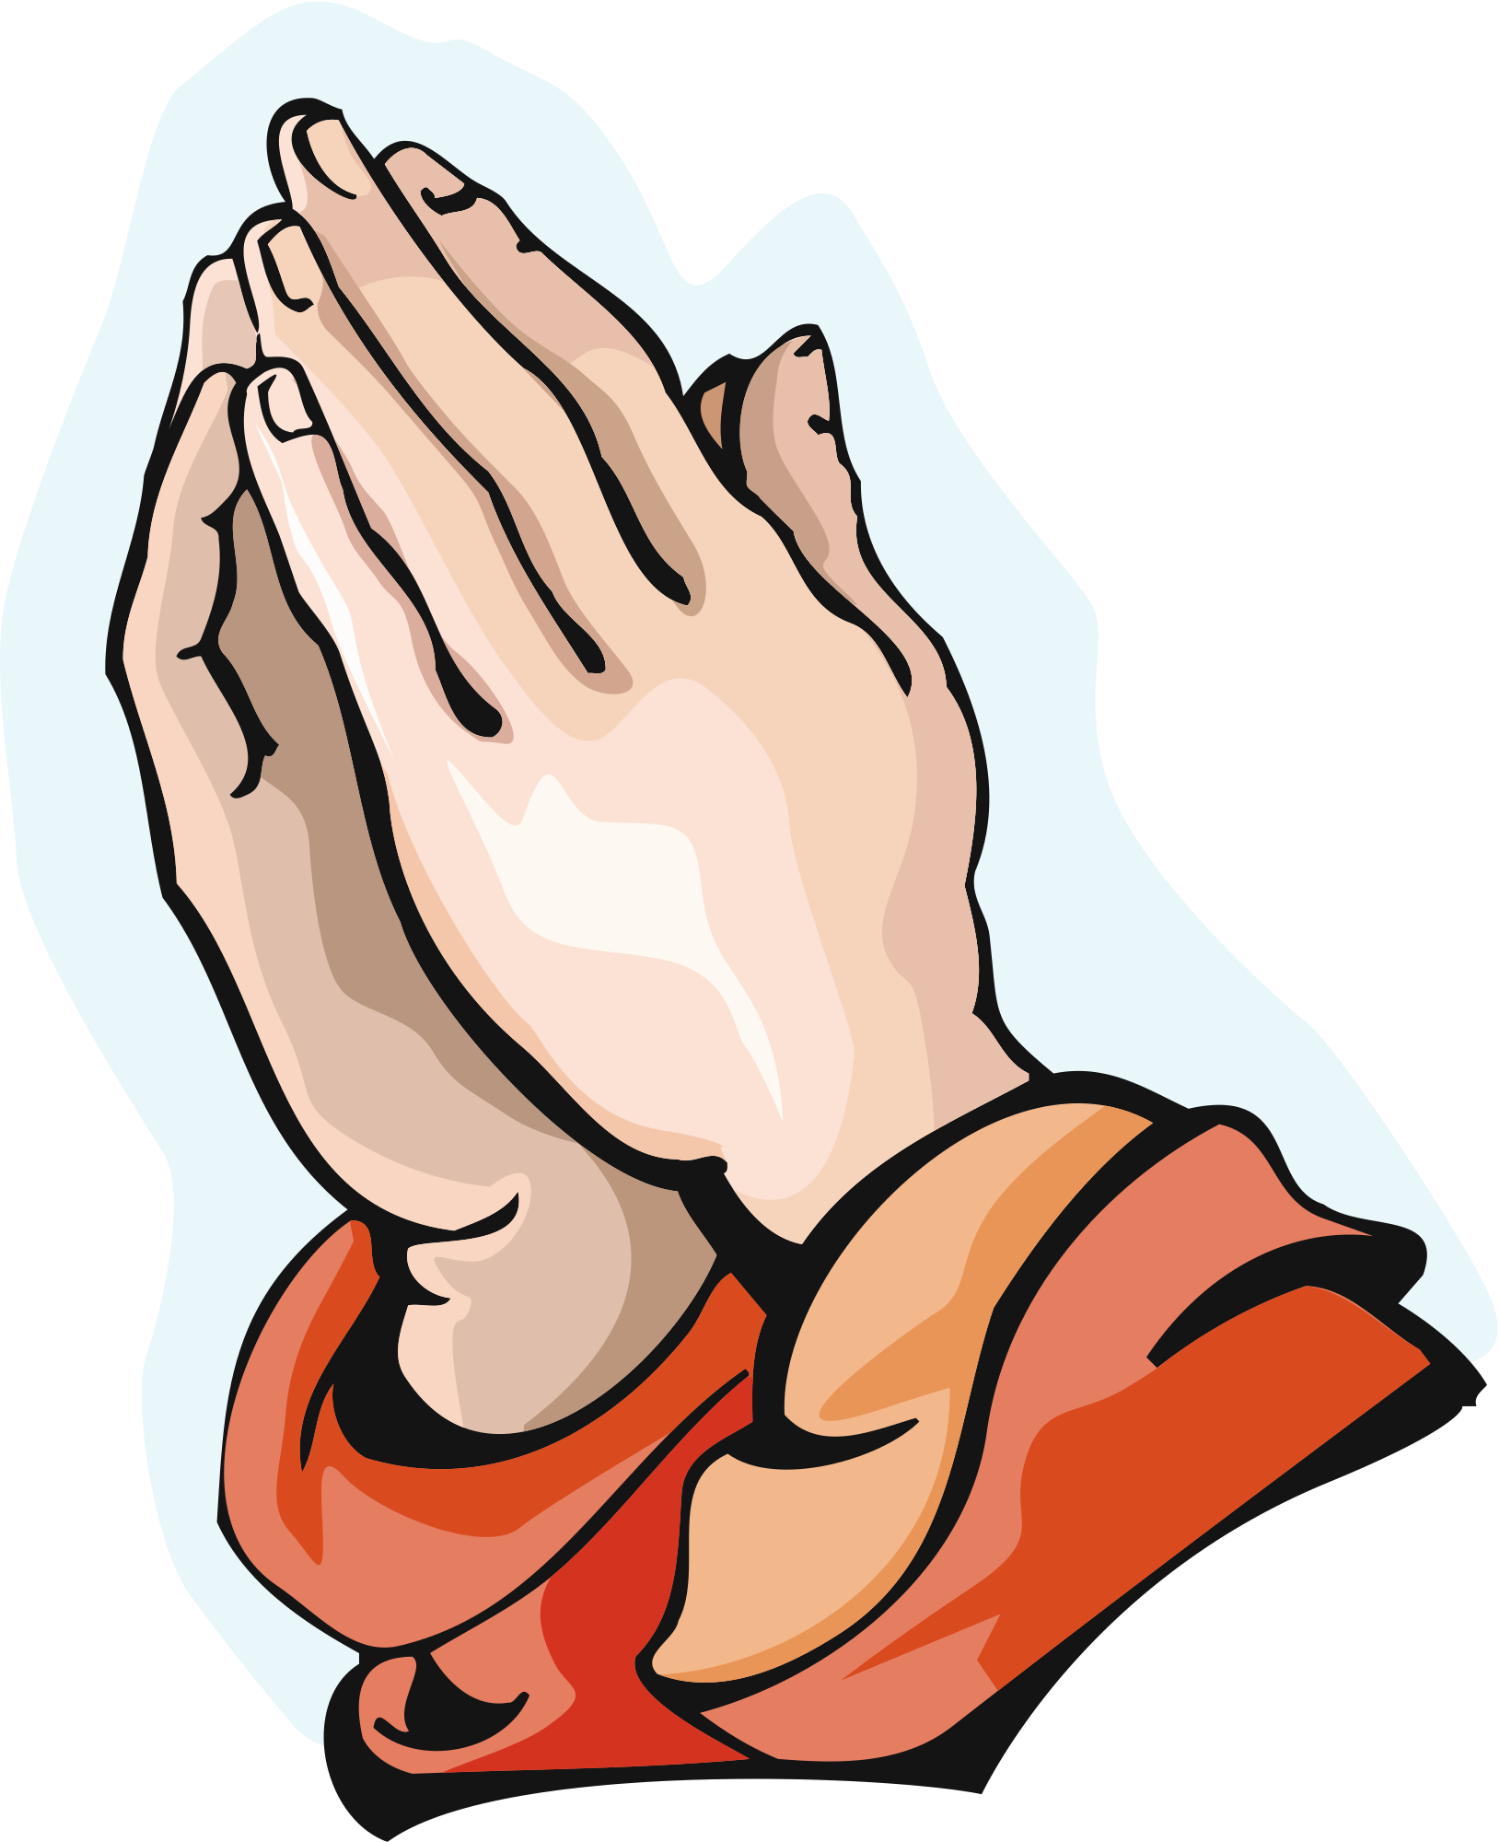 Praying Hands Clipart Cartoon Prayer Hands Clipart (With images ...